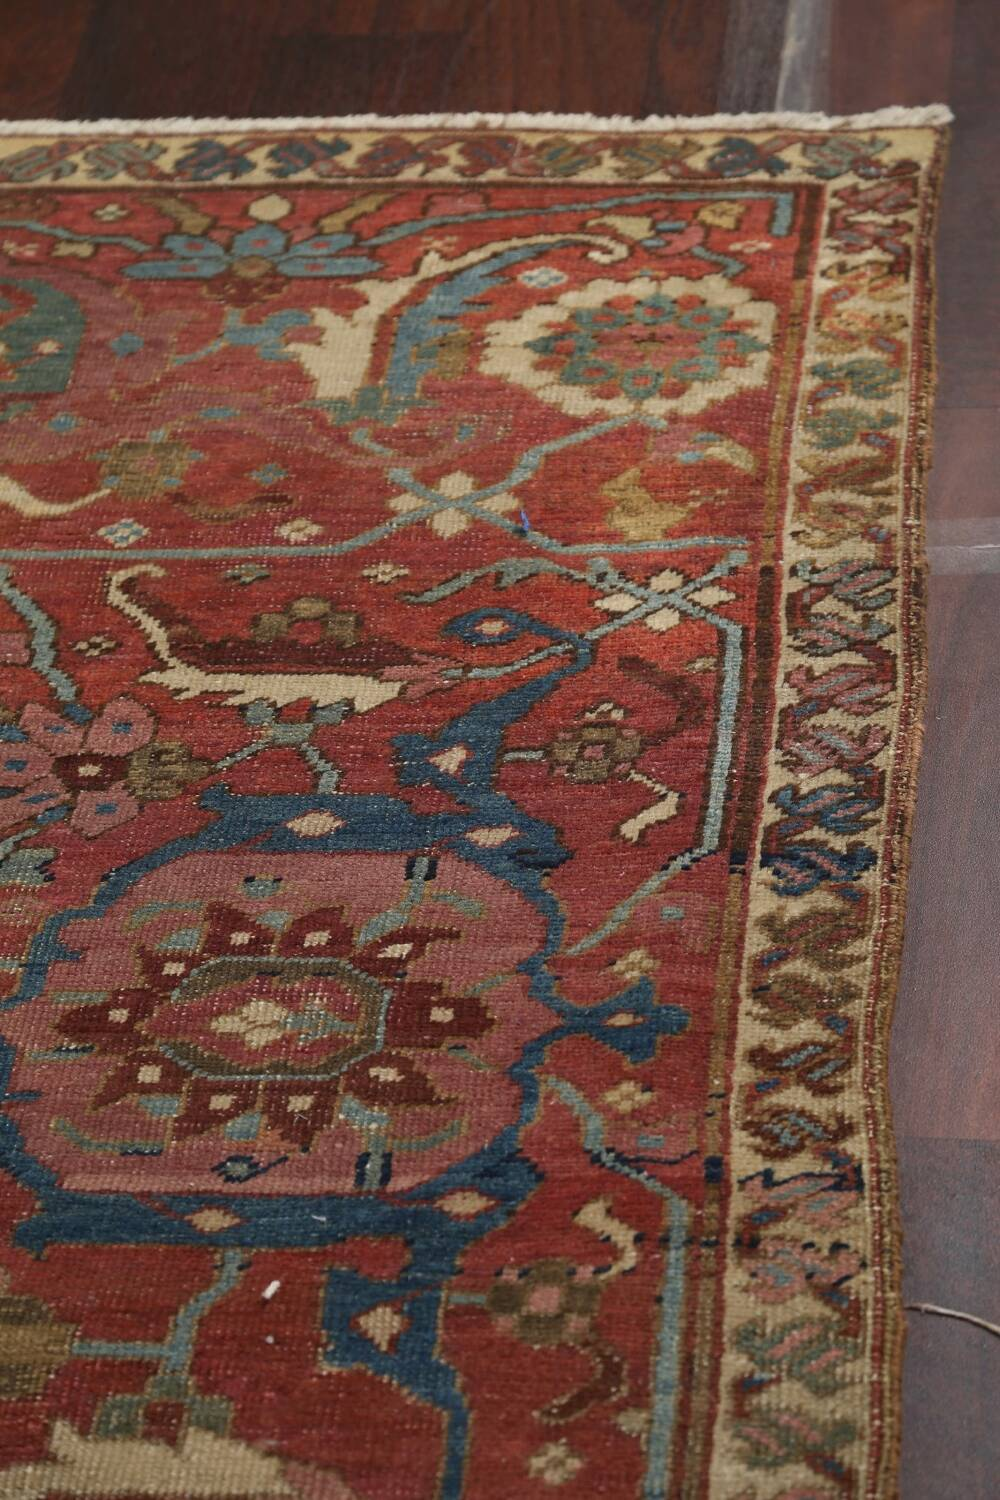 Pre-1900 Antique Vegetable Dye Heriz Serapi Persian Area Rug 12x18 image 11